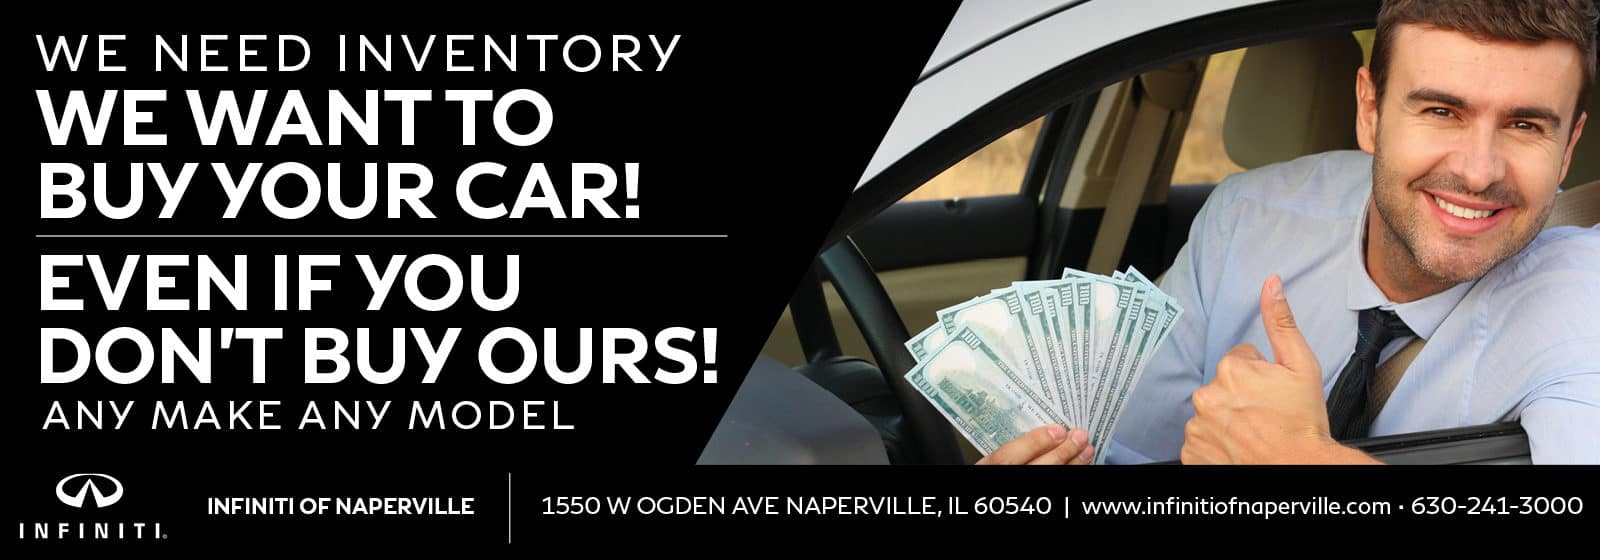 We Want To Buy Your Car | INFINITI of Naperville